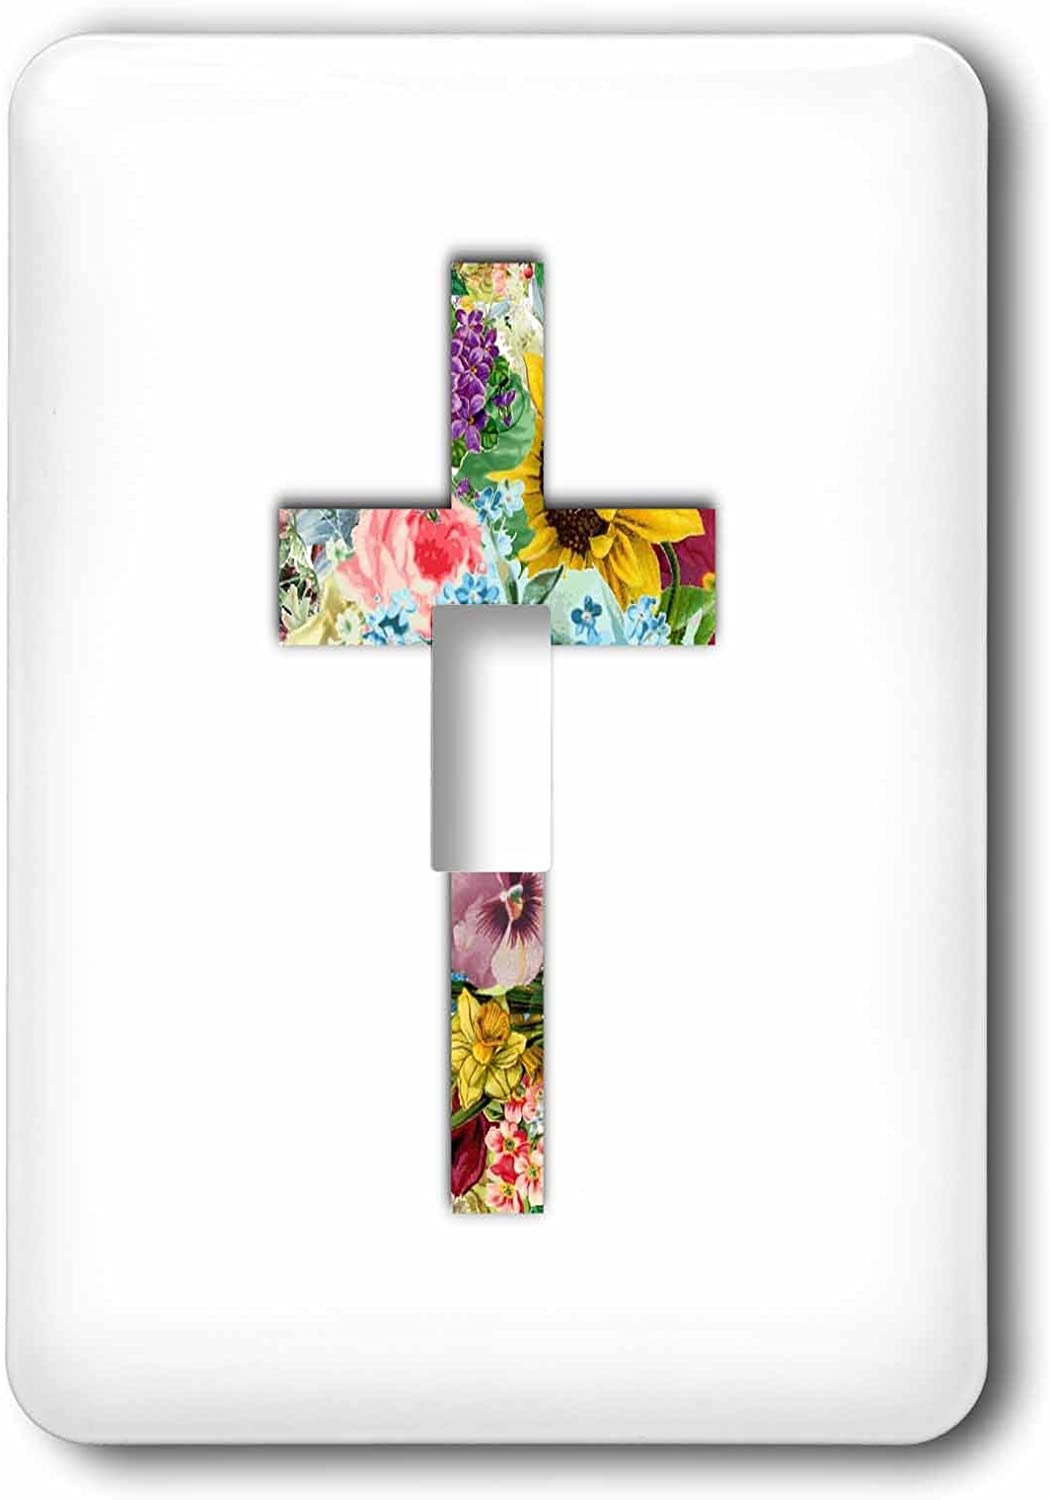 3drose Lsp 185474 1 Floral Christian Cross Colorful Girly Flower Pattern Religious Symbol Light Switch Cover Amazon Com